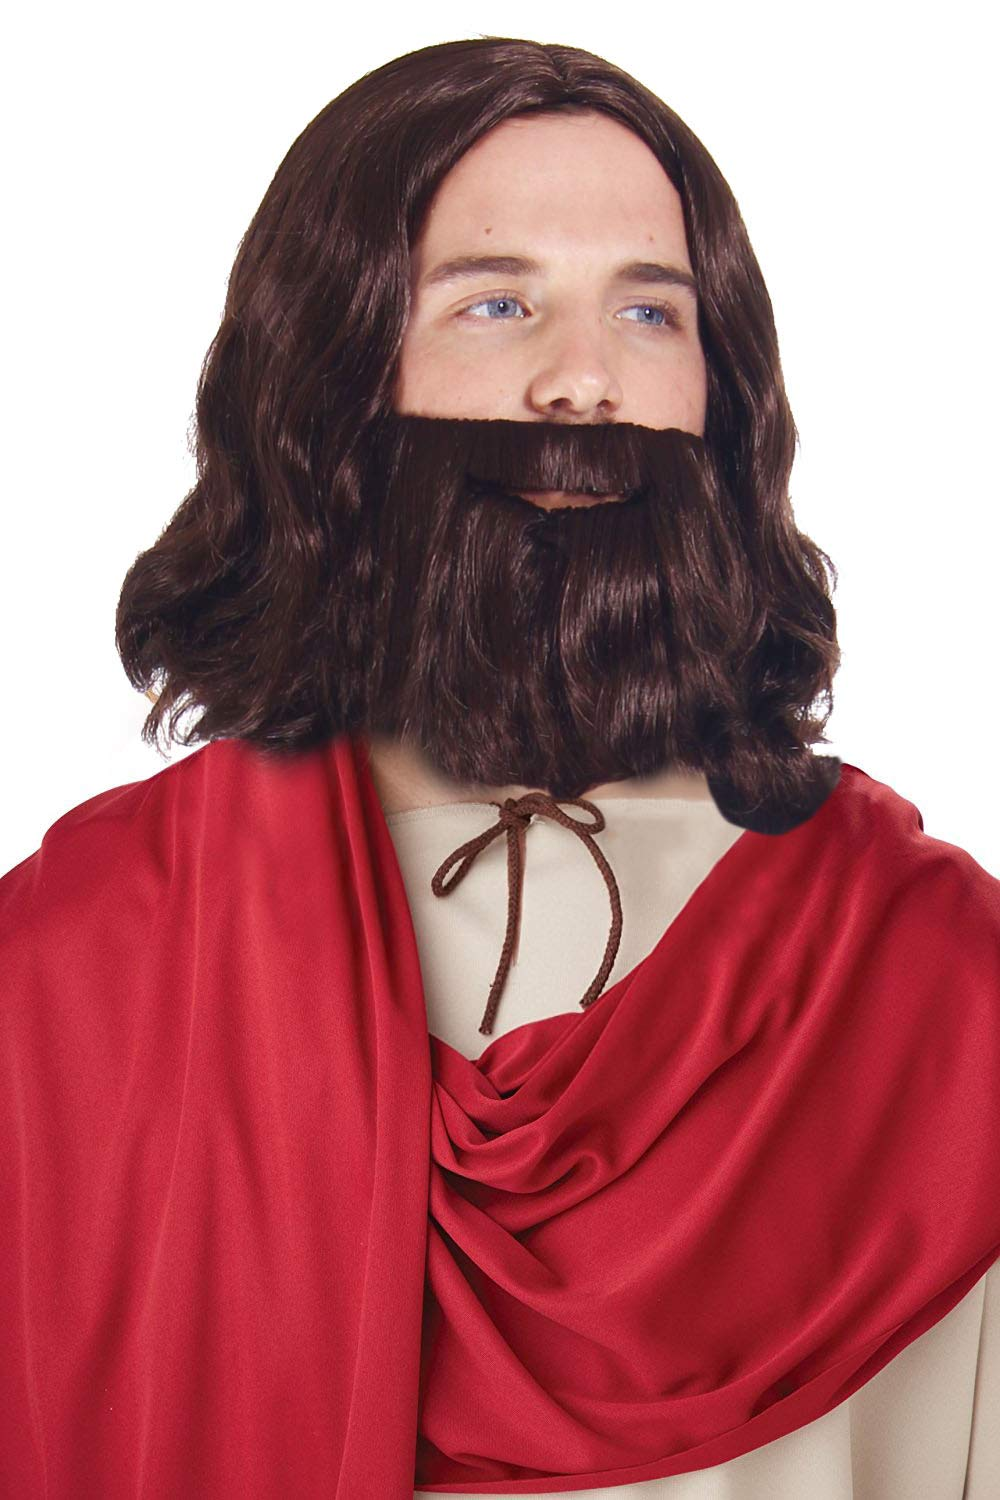 Verabella Men's Jesus Wigs and Beard Set for Halloween Cosplay Costume, Brown